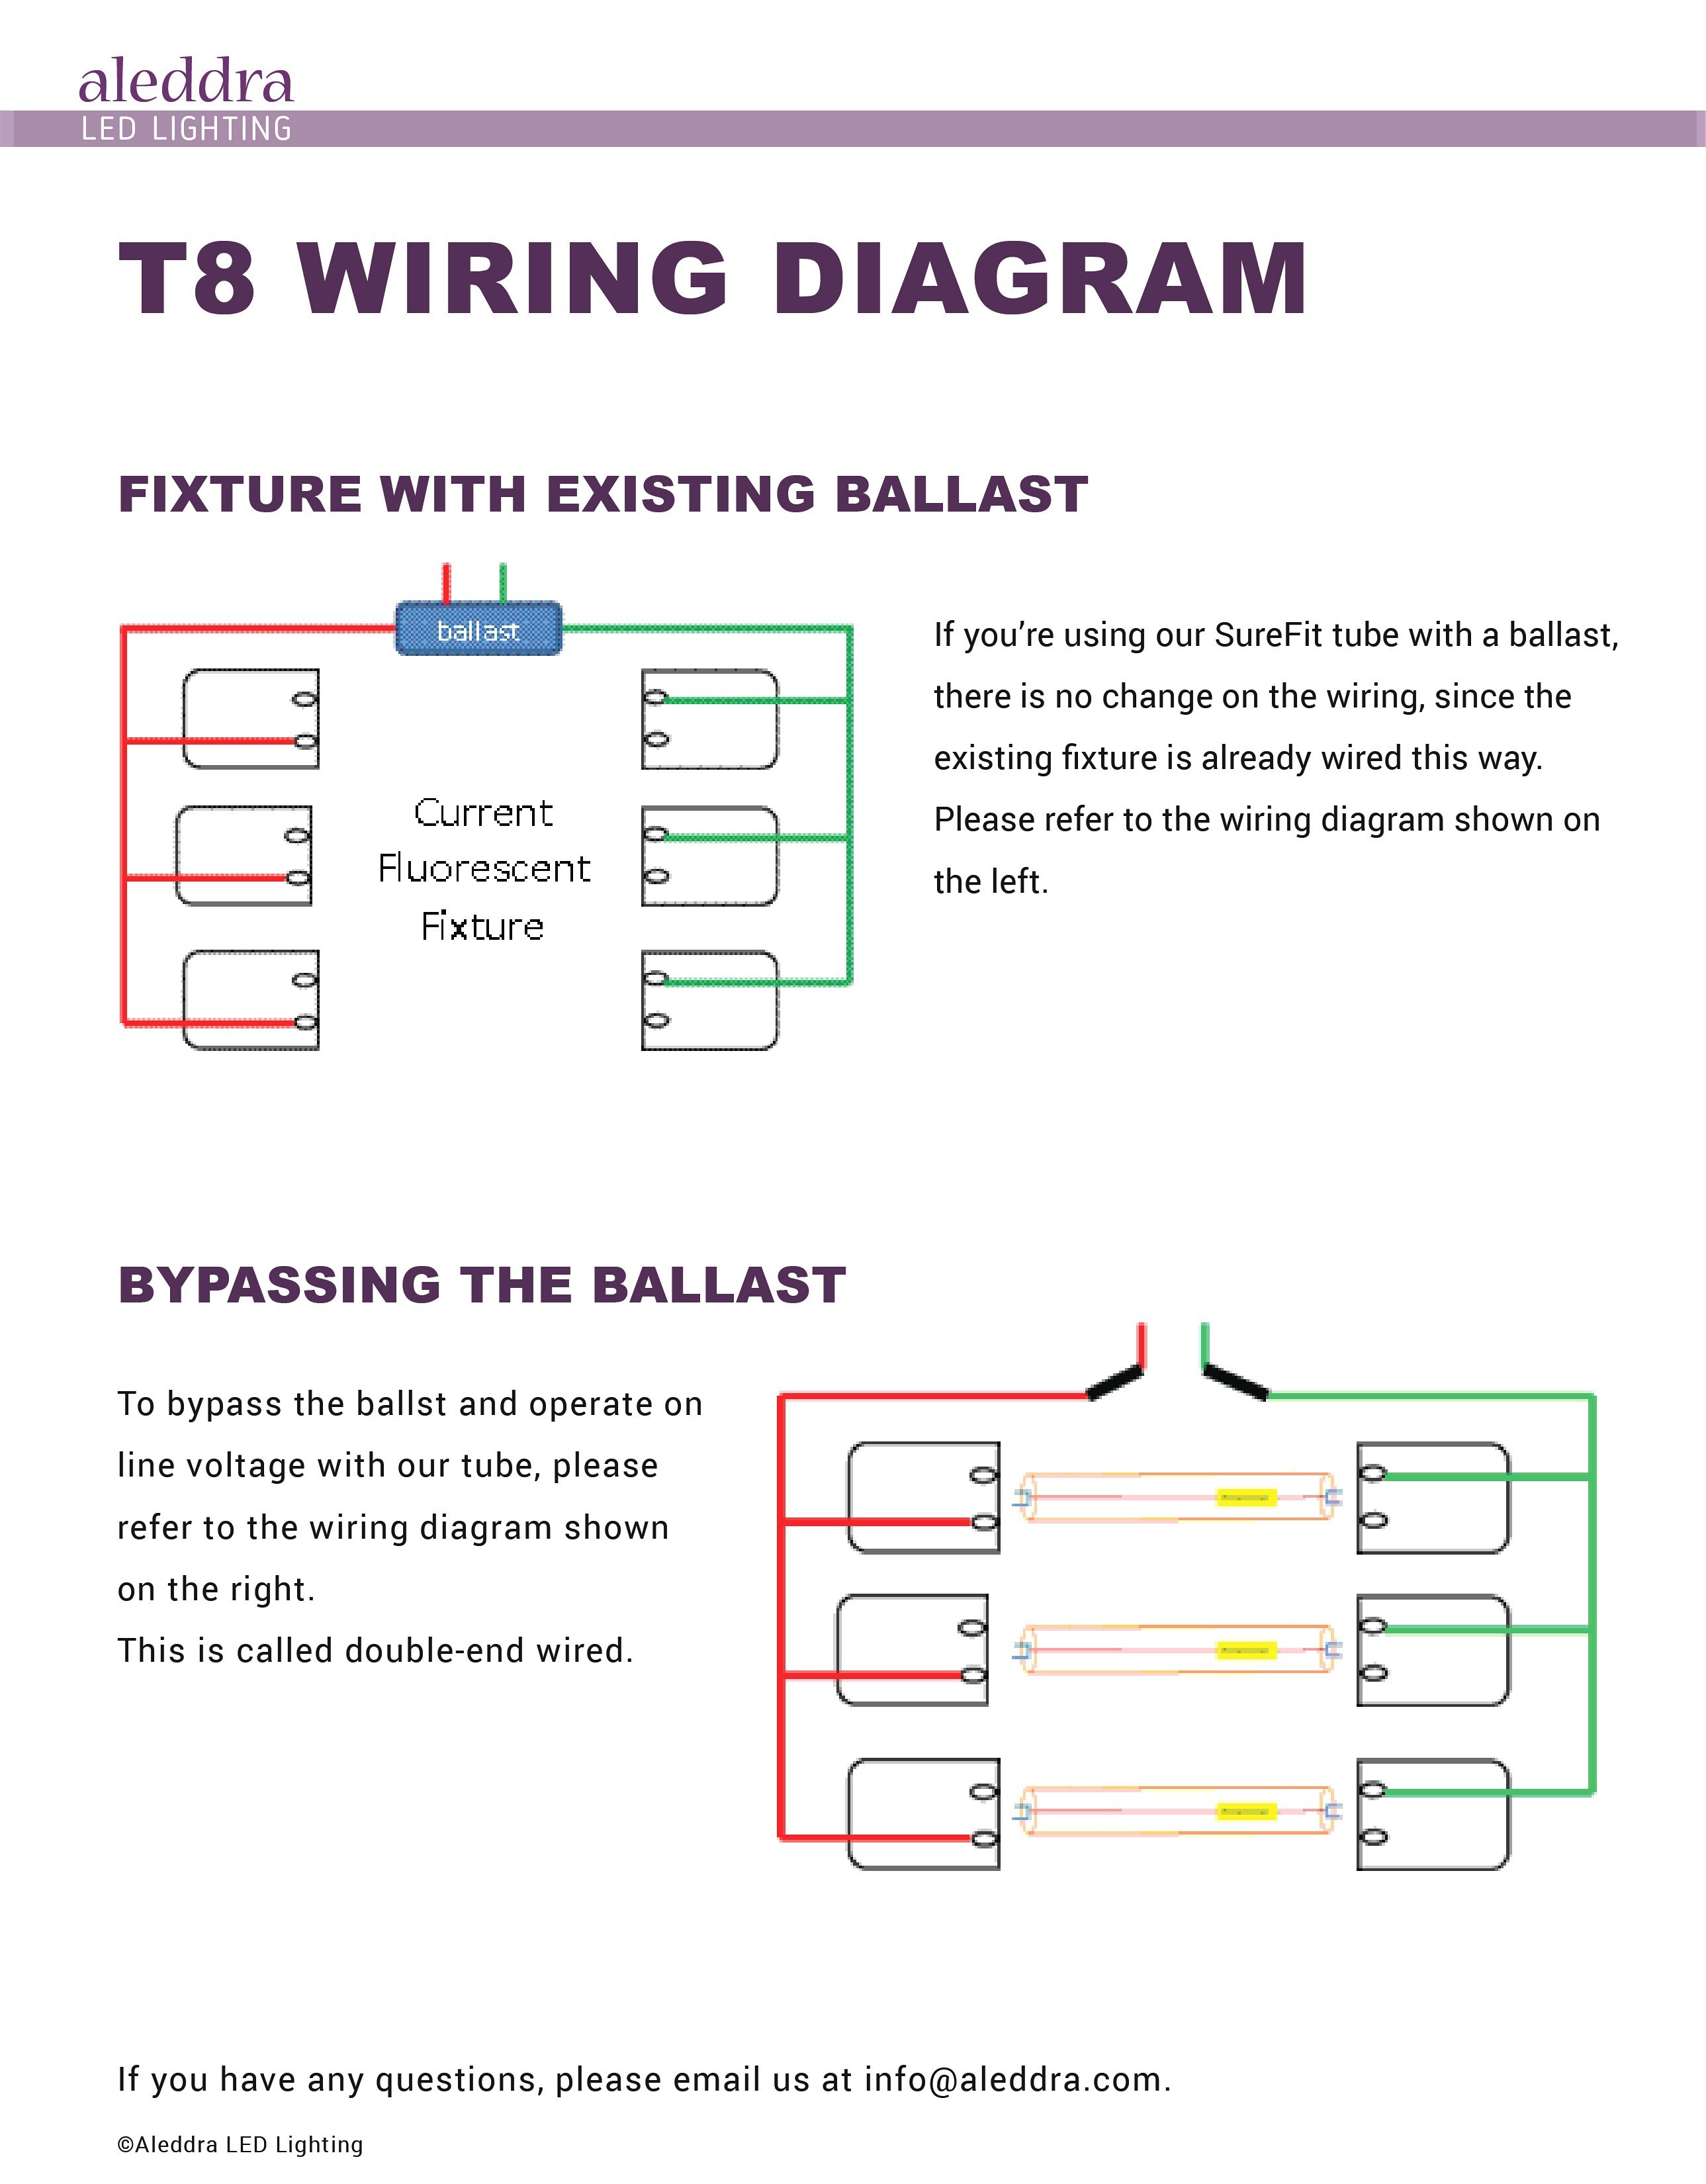 Wiring Diagram for Led Tubes Inspirationa Wiring Diagram Led Tube Philips Copy Triad Ballast In T8